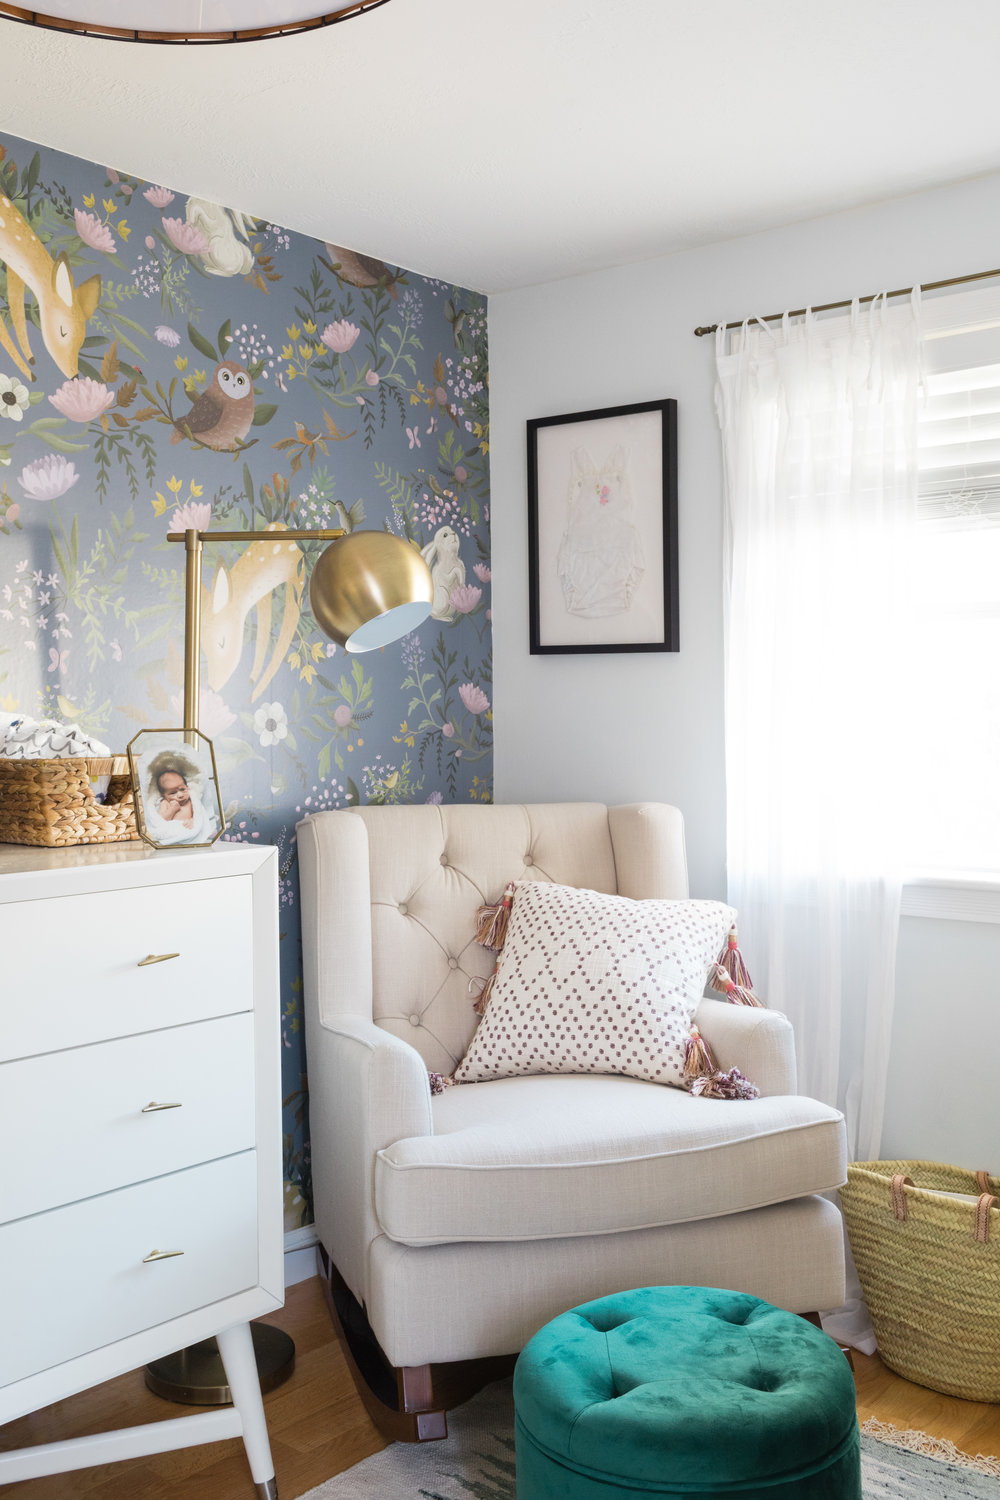 wallpaper  /  dresser  /  gold knobs  /  floor lamp  /  rocker  /  pillow  /  frame  /  curtains